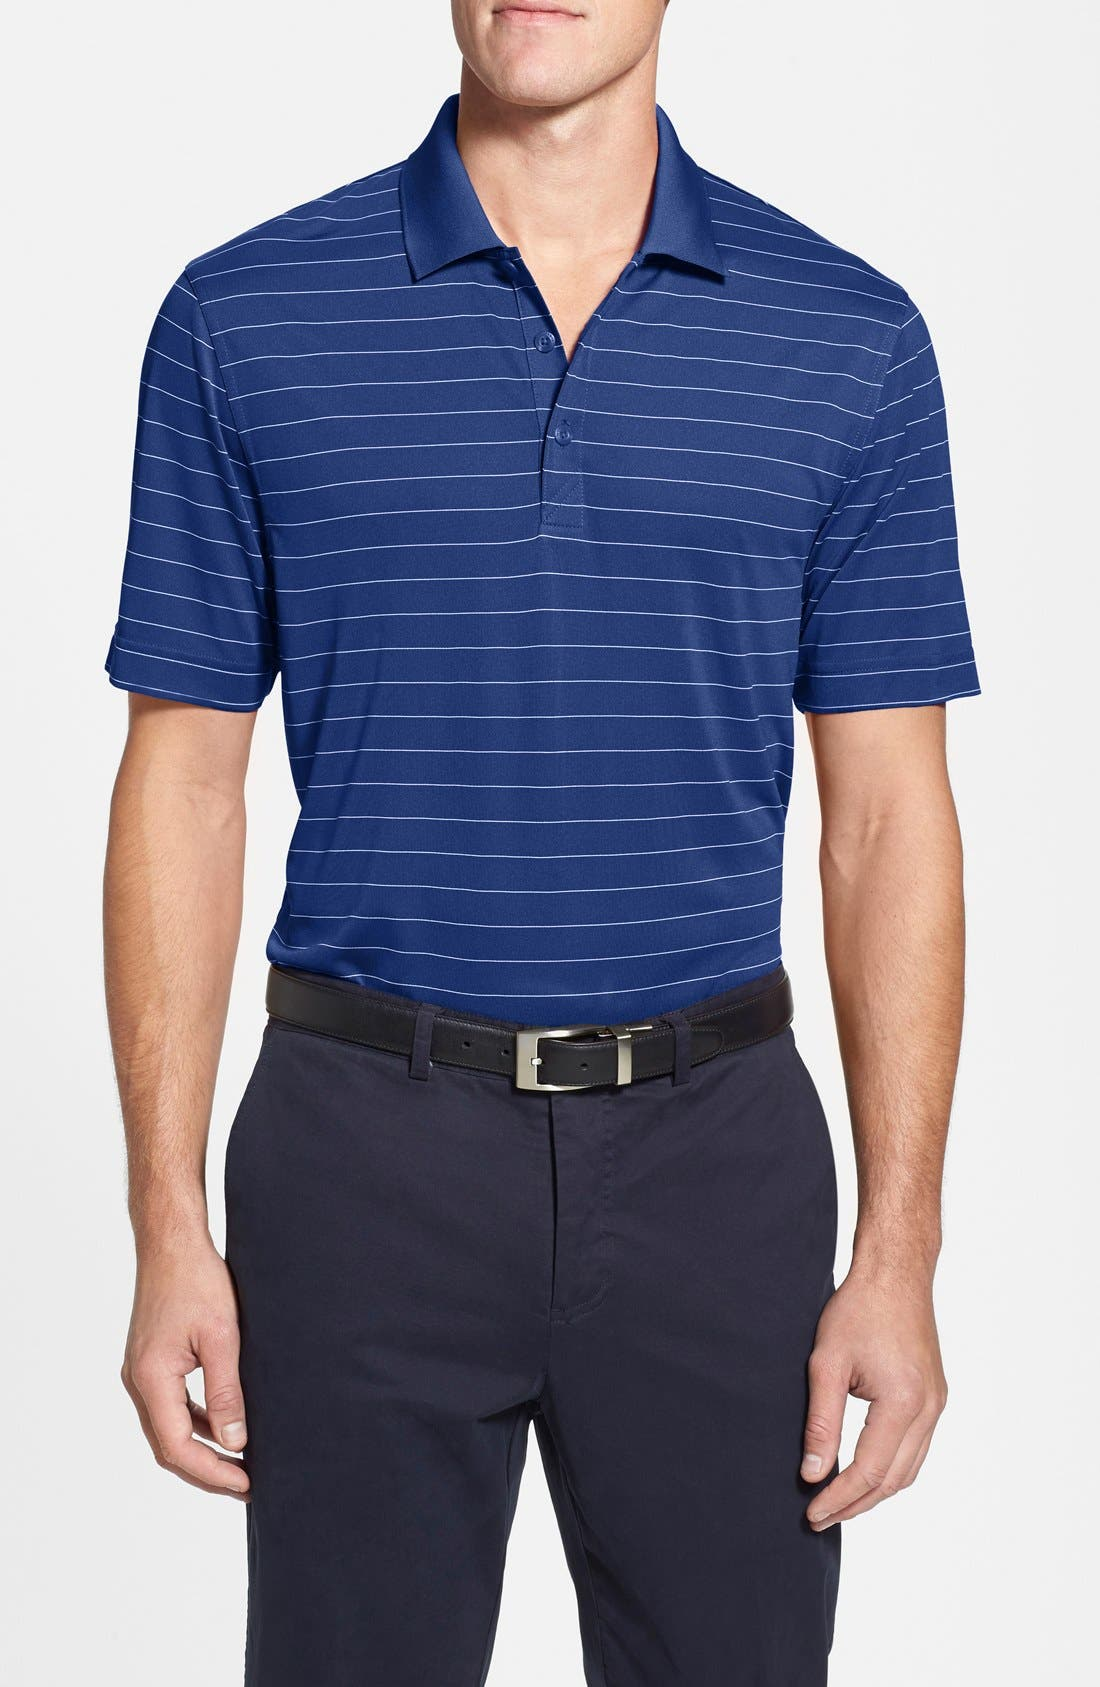 Main Image - Cutter & Buck Franklin Stripe DryTec® Polo